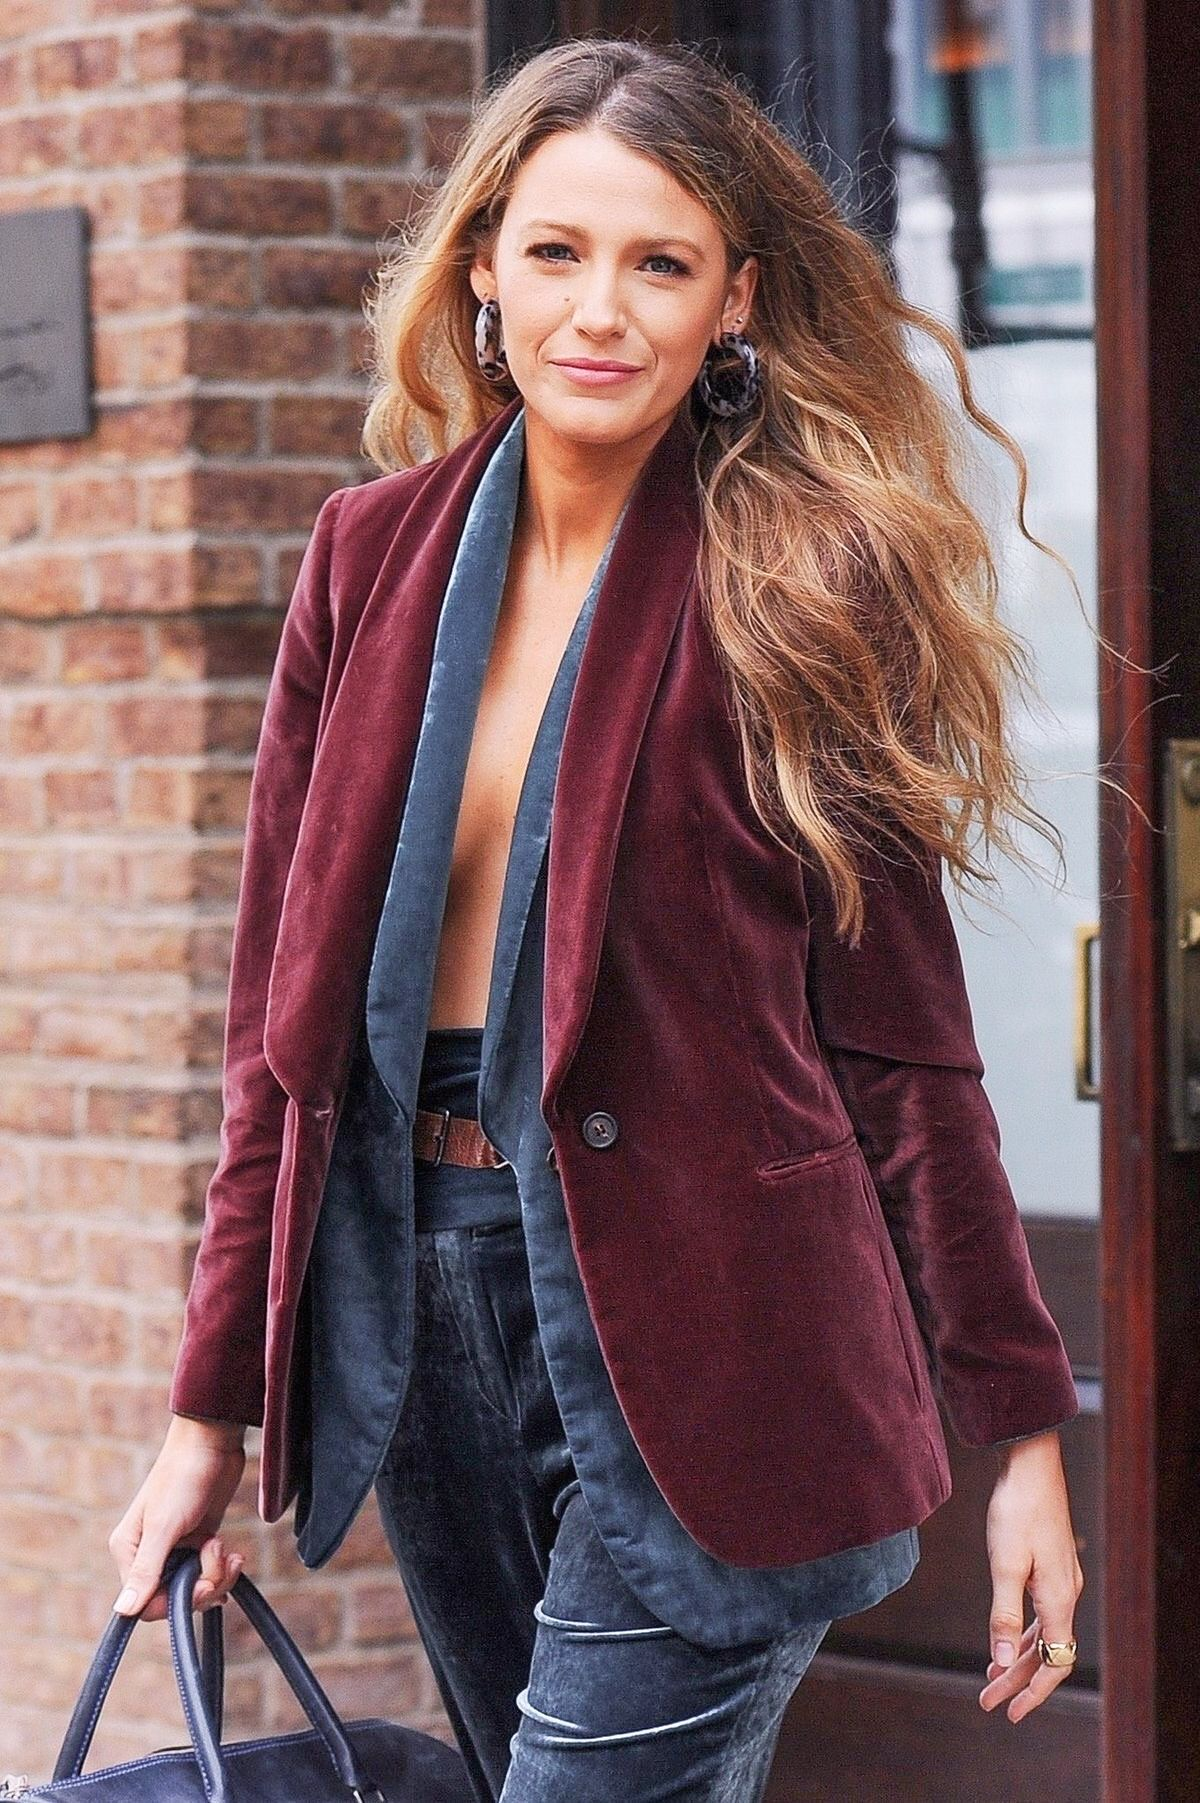 The Blake Of Lively In 2020 Honey Brown Hair Color Blake Lively Hair Color Honey Hair Color